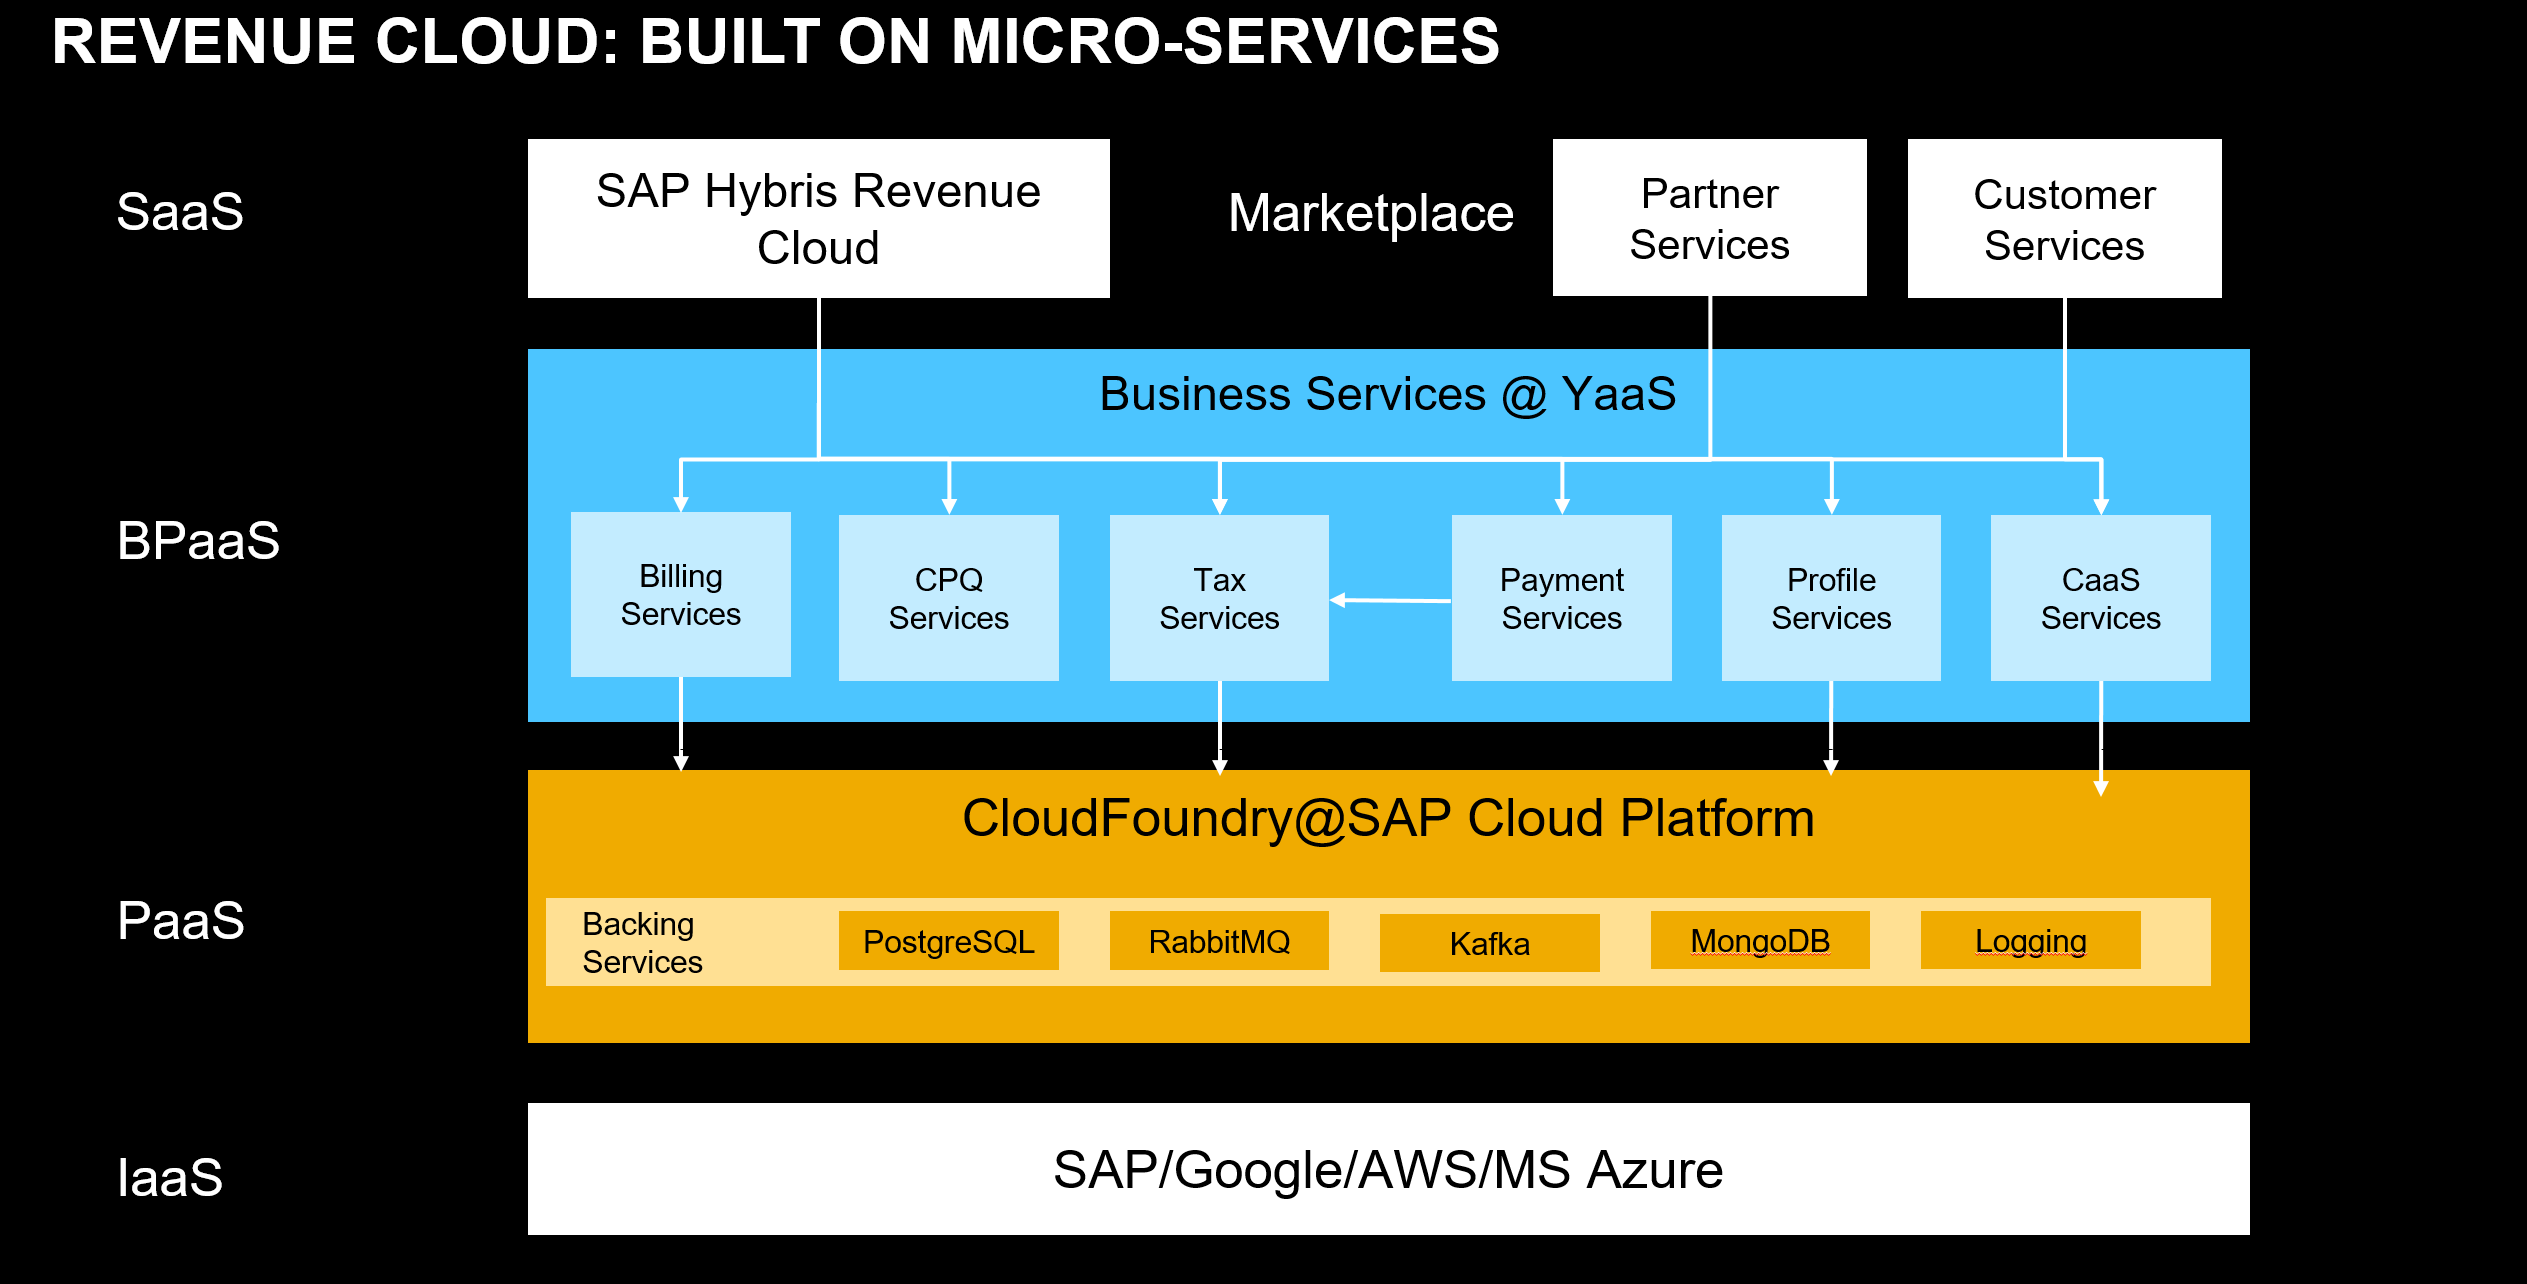 Revenue Cloud architecture